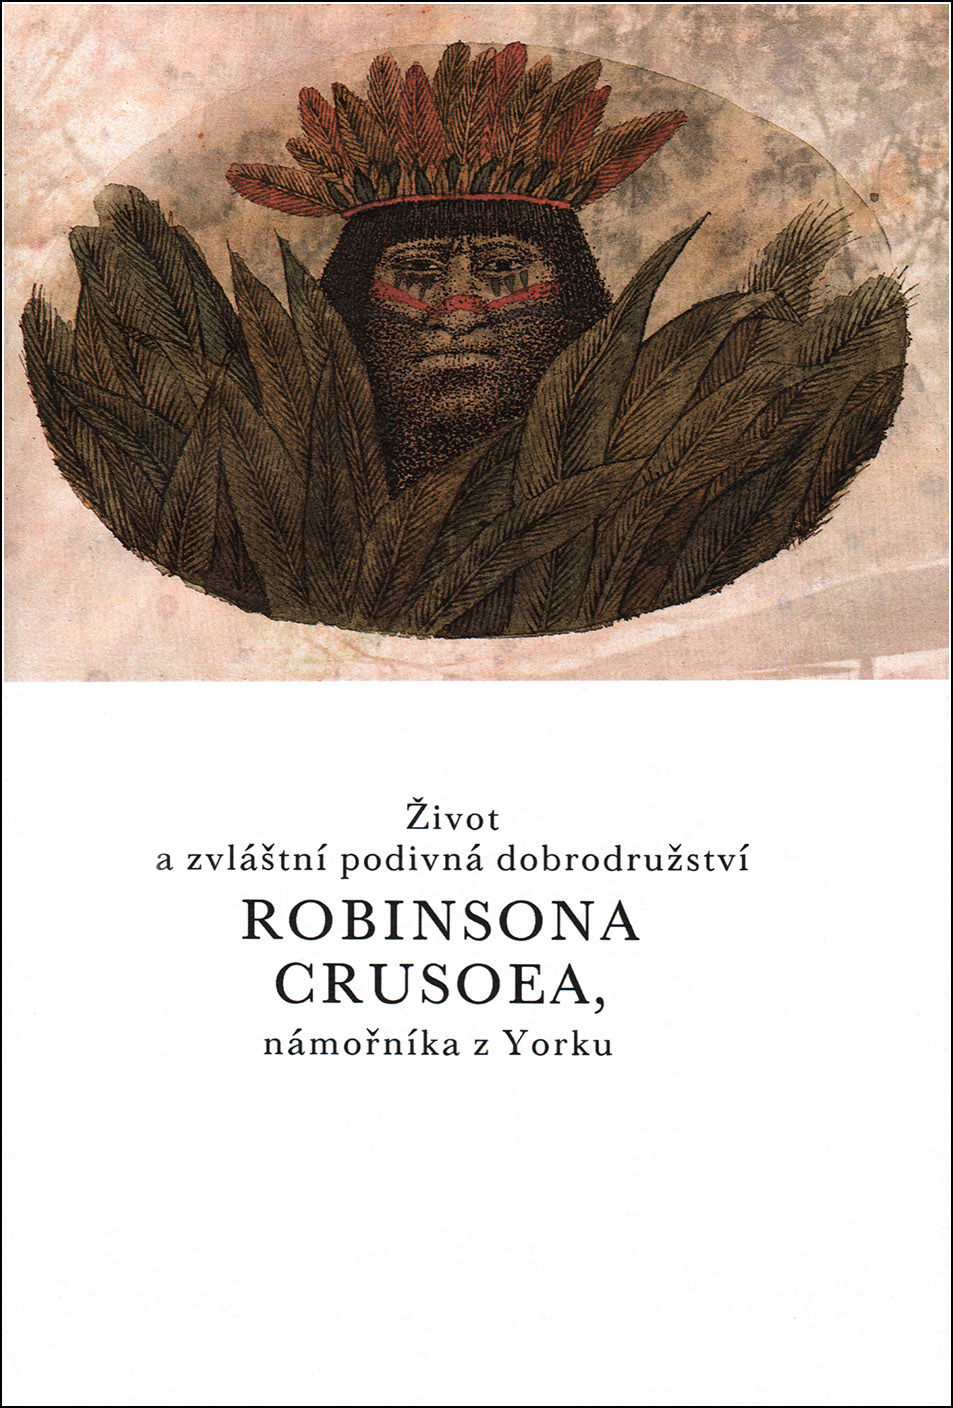 Adolf Born, Robinson Crusoe